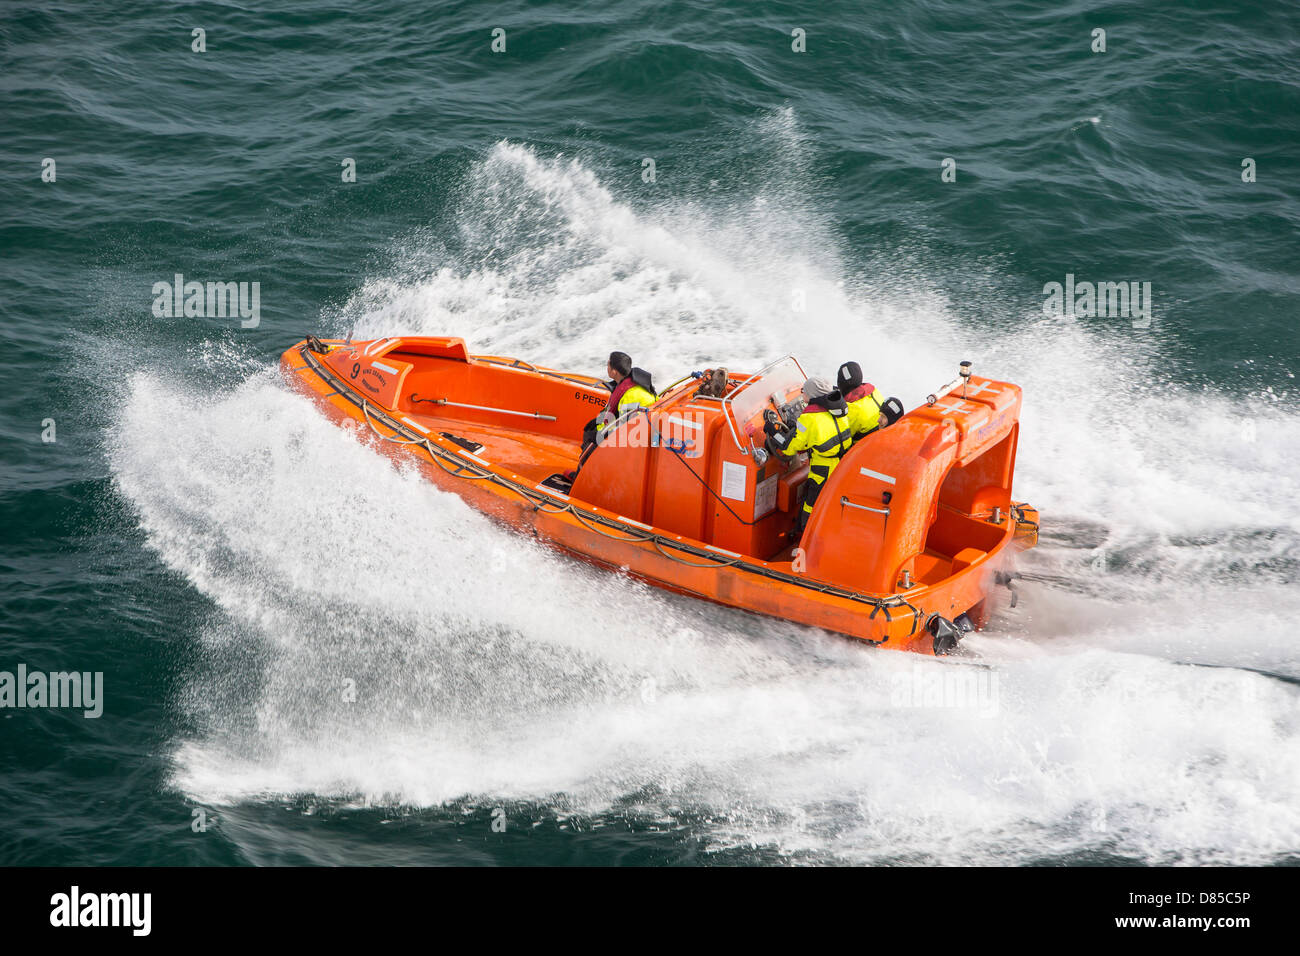 A Ferry Boat Lifeboat Stock Photos Amp A Ferry Boat Lifeboat